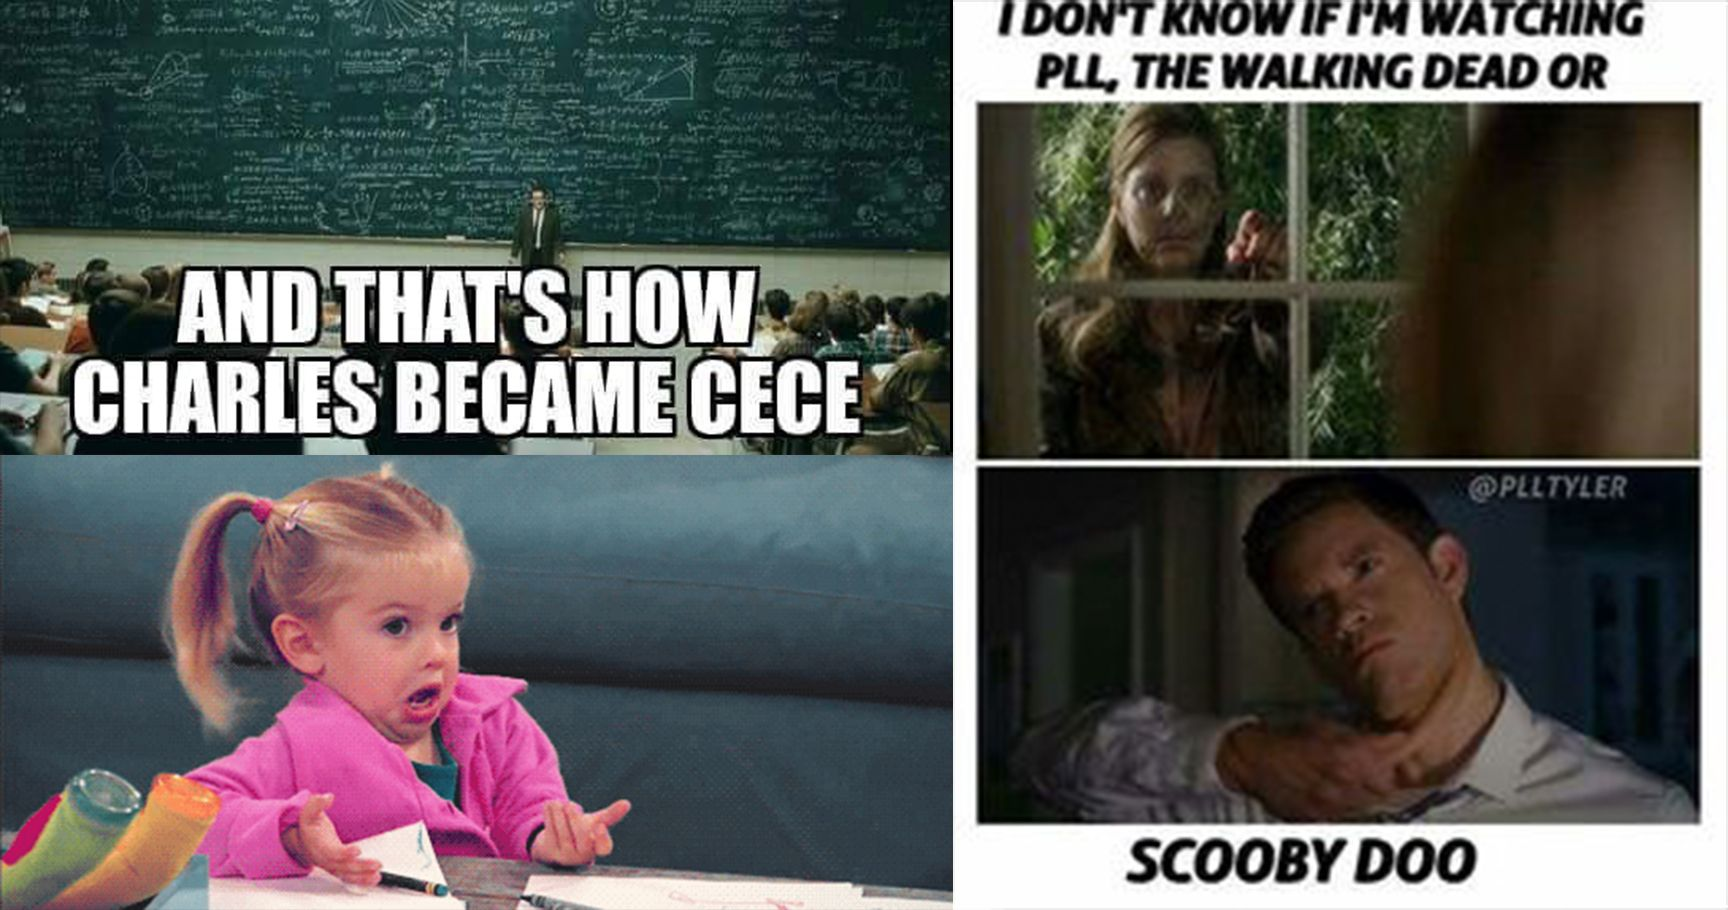 15 Pretty Little Liars Memes Every Fan Can Relate To | TheThings